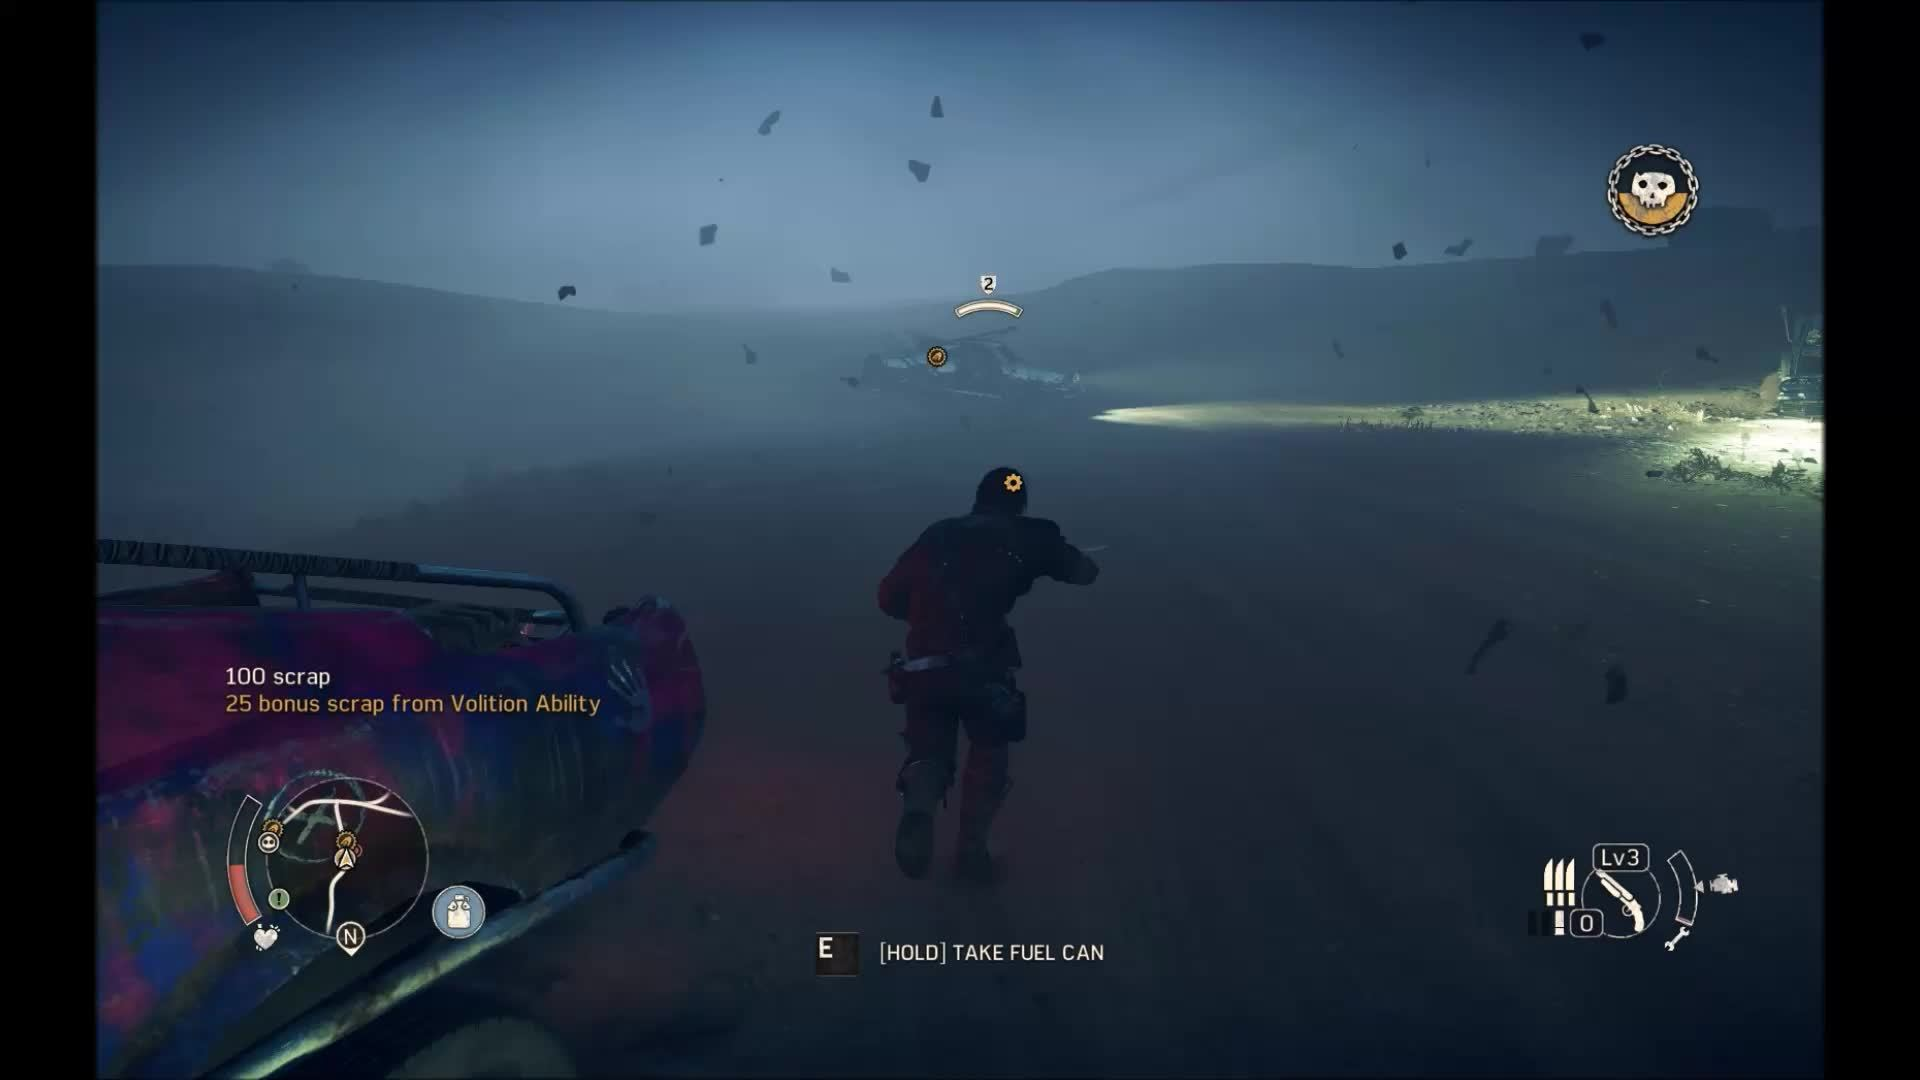 MadMaxGame, madmaxgame, When there's a storm but you need scrap (reddit) GIFs